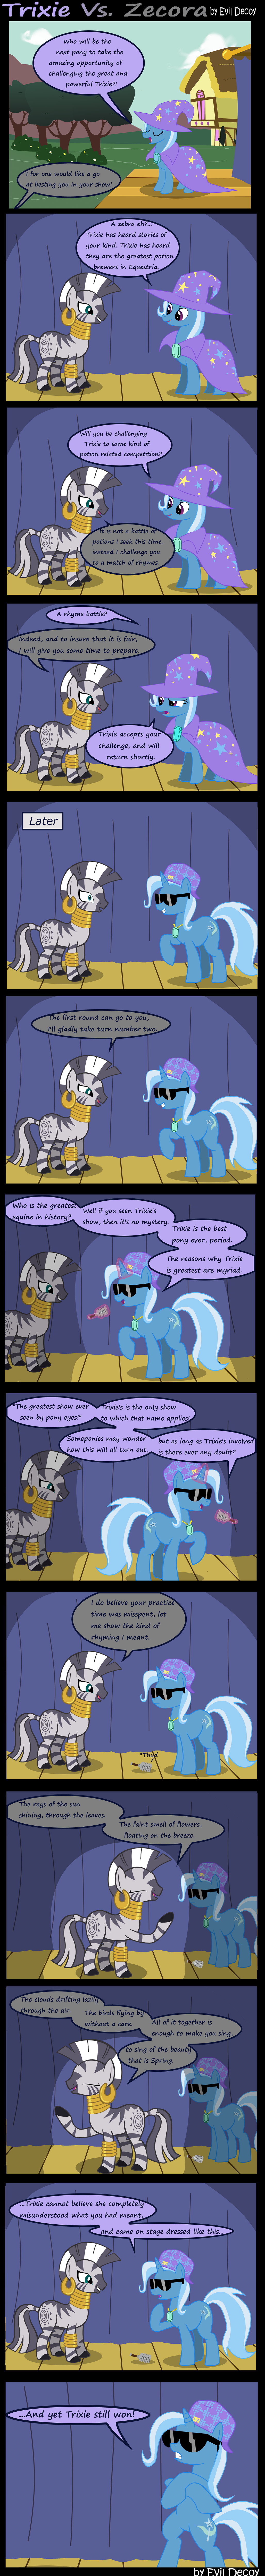 Trixie Vs. Zecora by Evil-DeC0Y